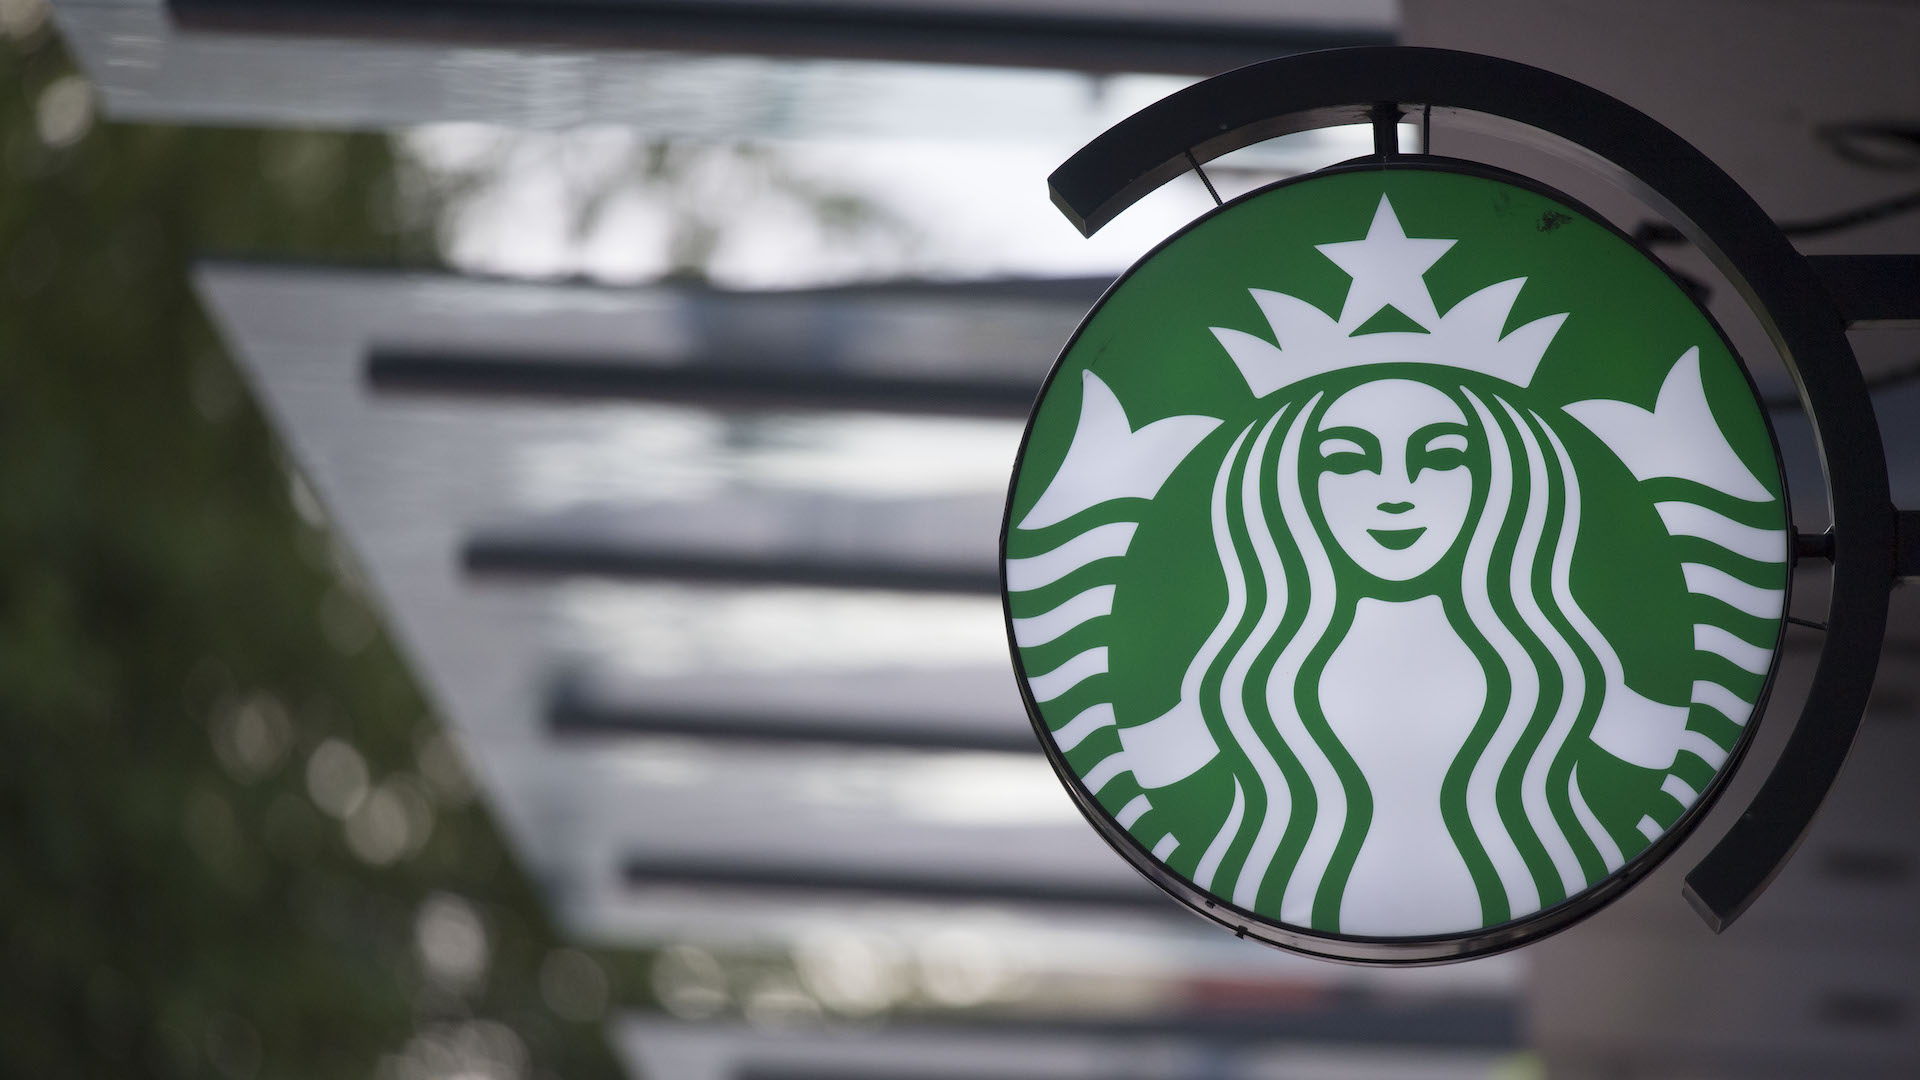 Starbucks Prohibiting Workers From Wearing Anything Endorsing Black Lives Matter